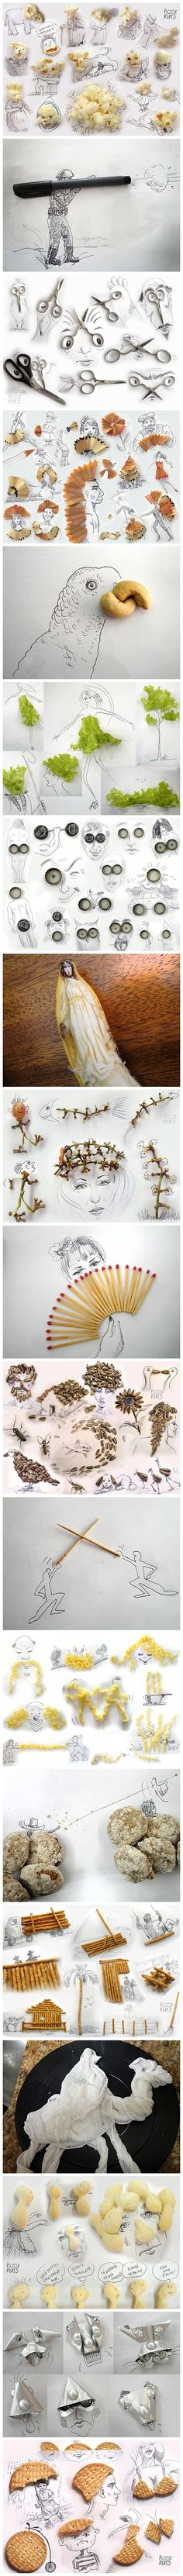 Victor Nunes will change the way you look at common-day things. Seriously, what a whimsical imagination he must have. Artist Victor Nunes turns everyday objects into sets of cute and quirky doodles. H(Baking Eggplant Fries) Street Art, Wow Art, Everyday Objects, Art Plastique, Creative Art, Amazing Art, Awesome, Art Drawings, Art Projects